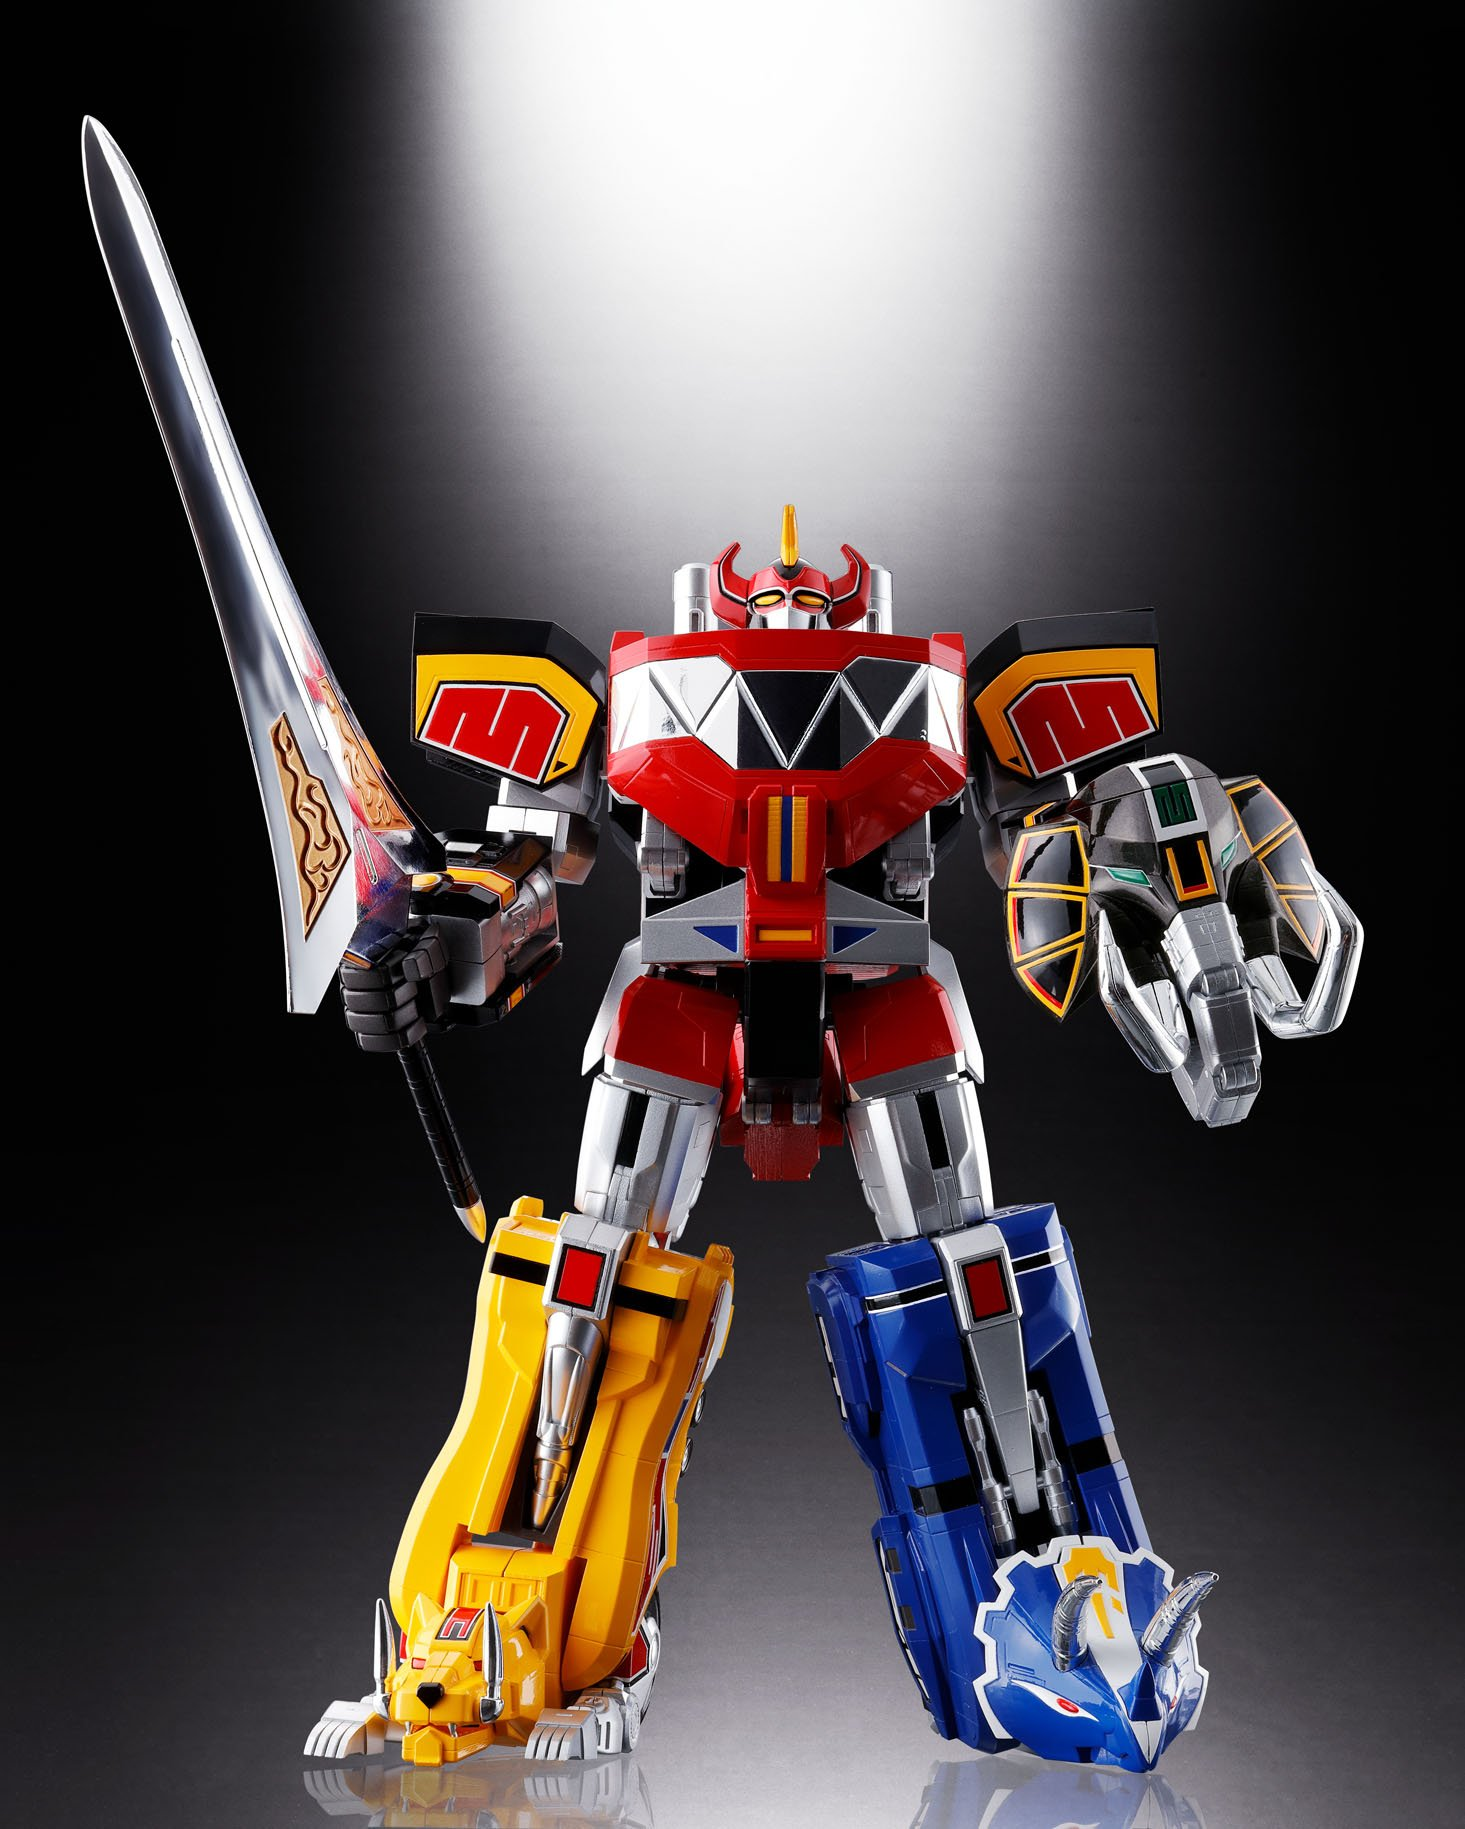 Bandai Tamashii Nations Soul of Chogokin Mighty Morphing Power Rangers Action Figure by Bandai (Image #15)